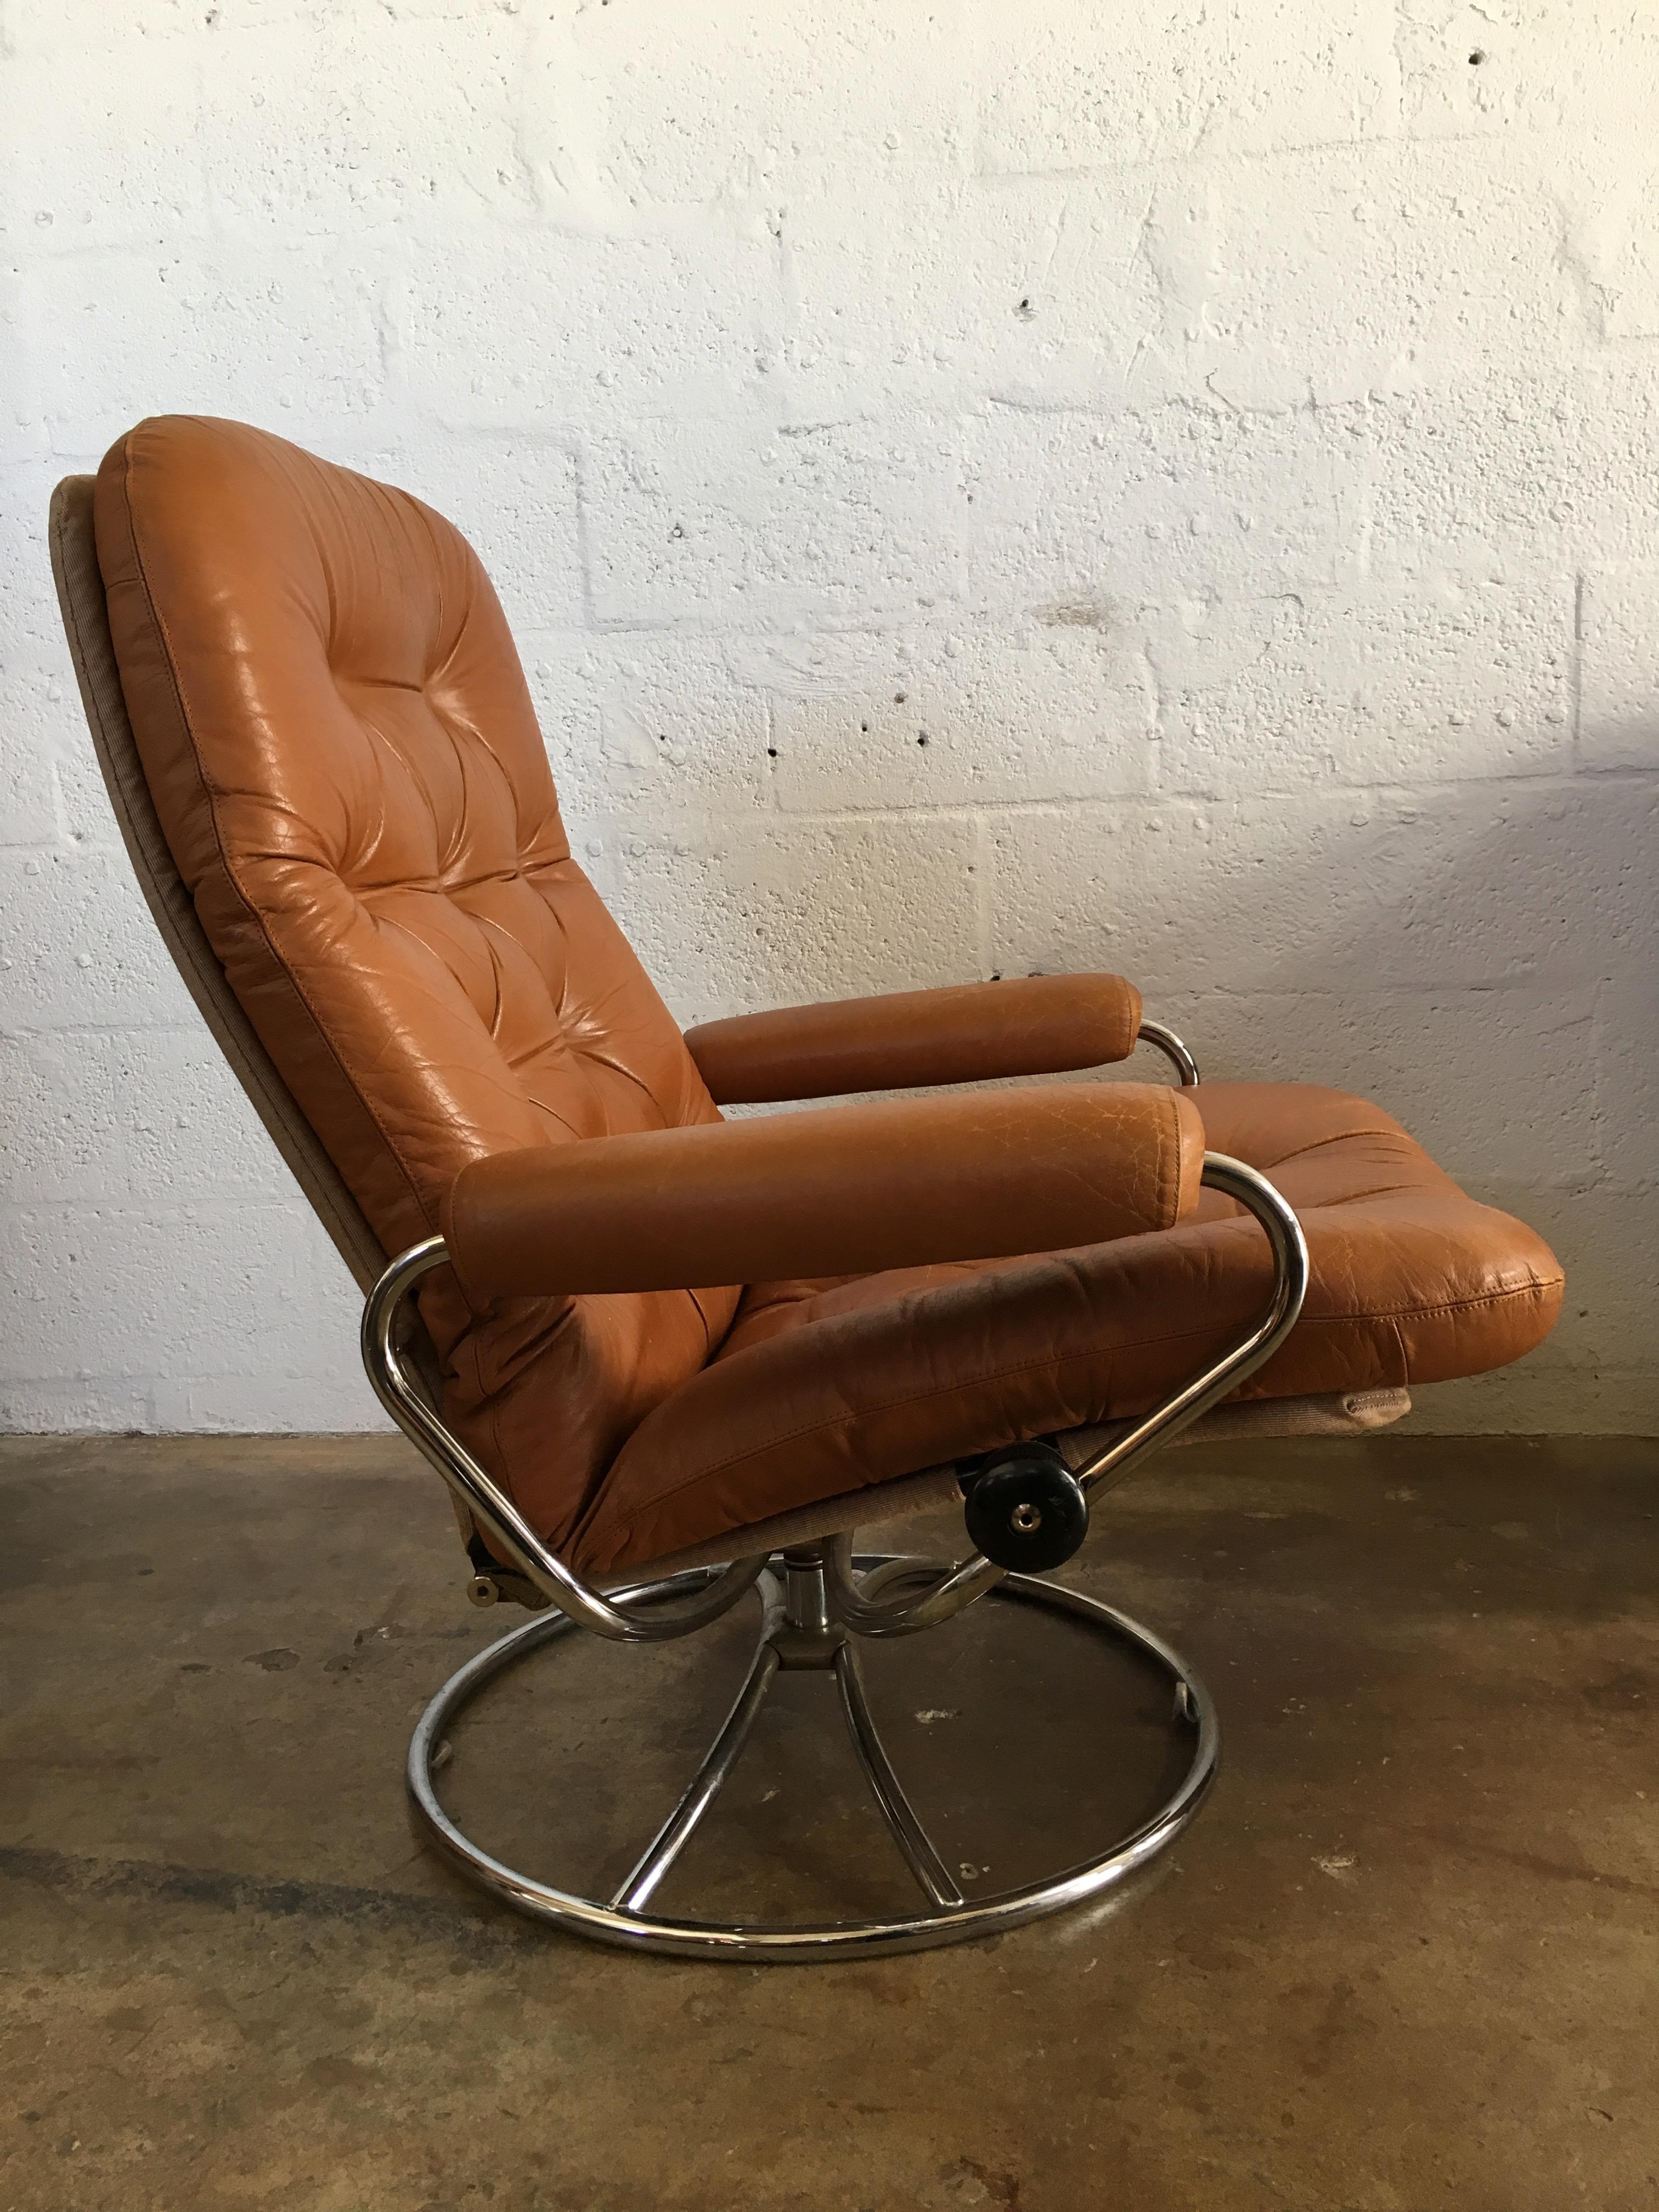 Vintage Mid Century Modern Reclining Chair By Ekornes Stressless (A Pair)    Image